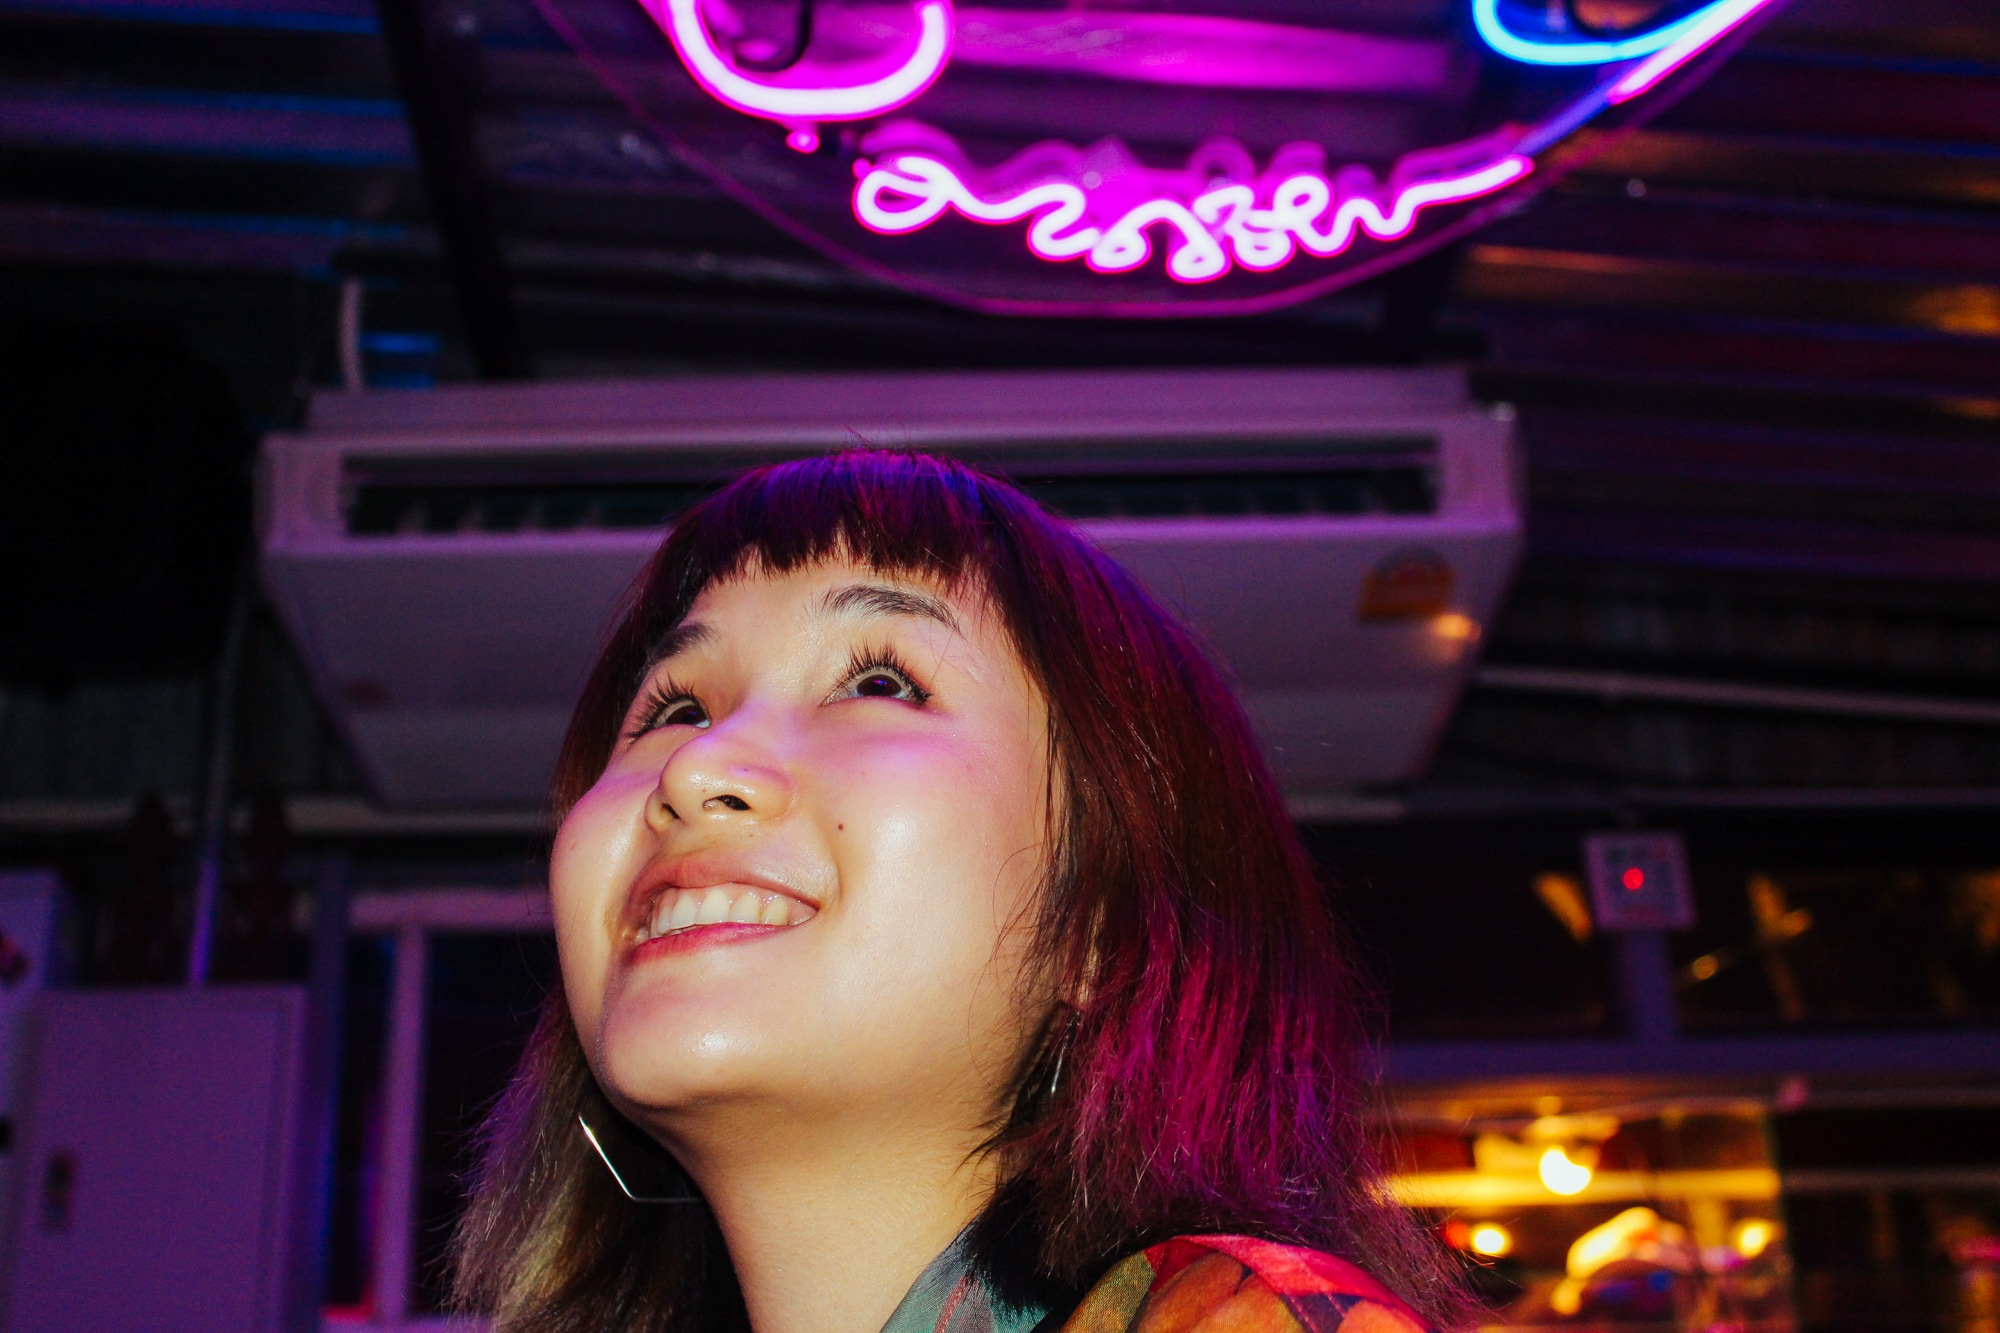 A girl poses for picture at a bar